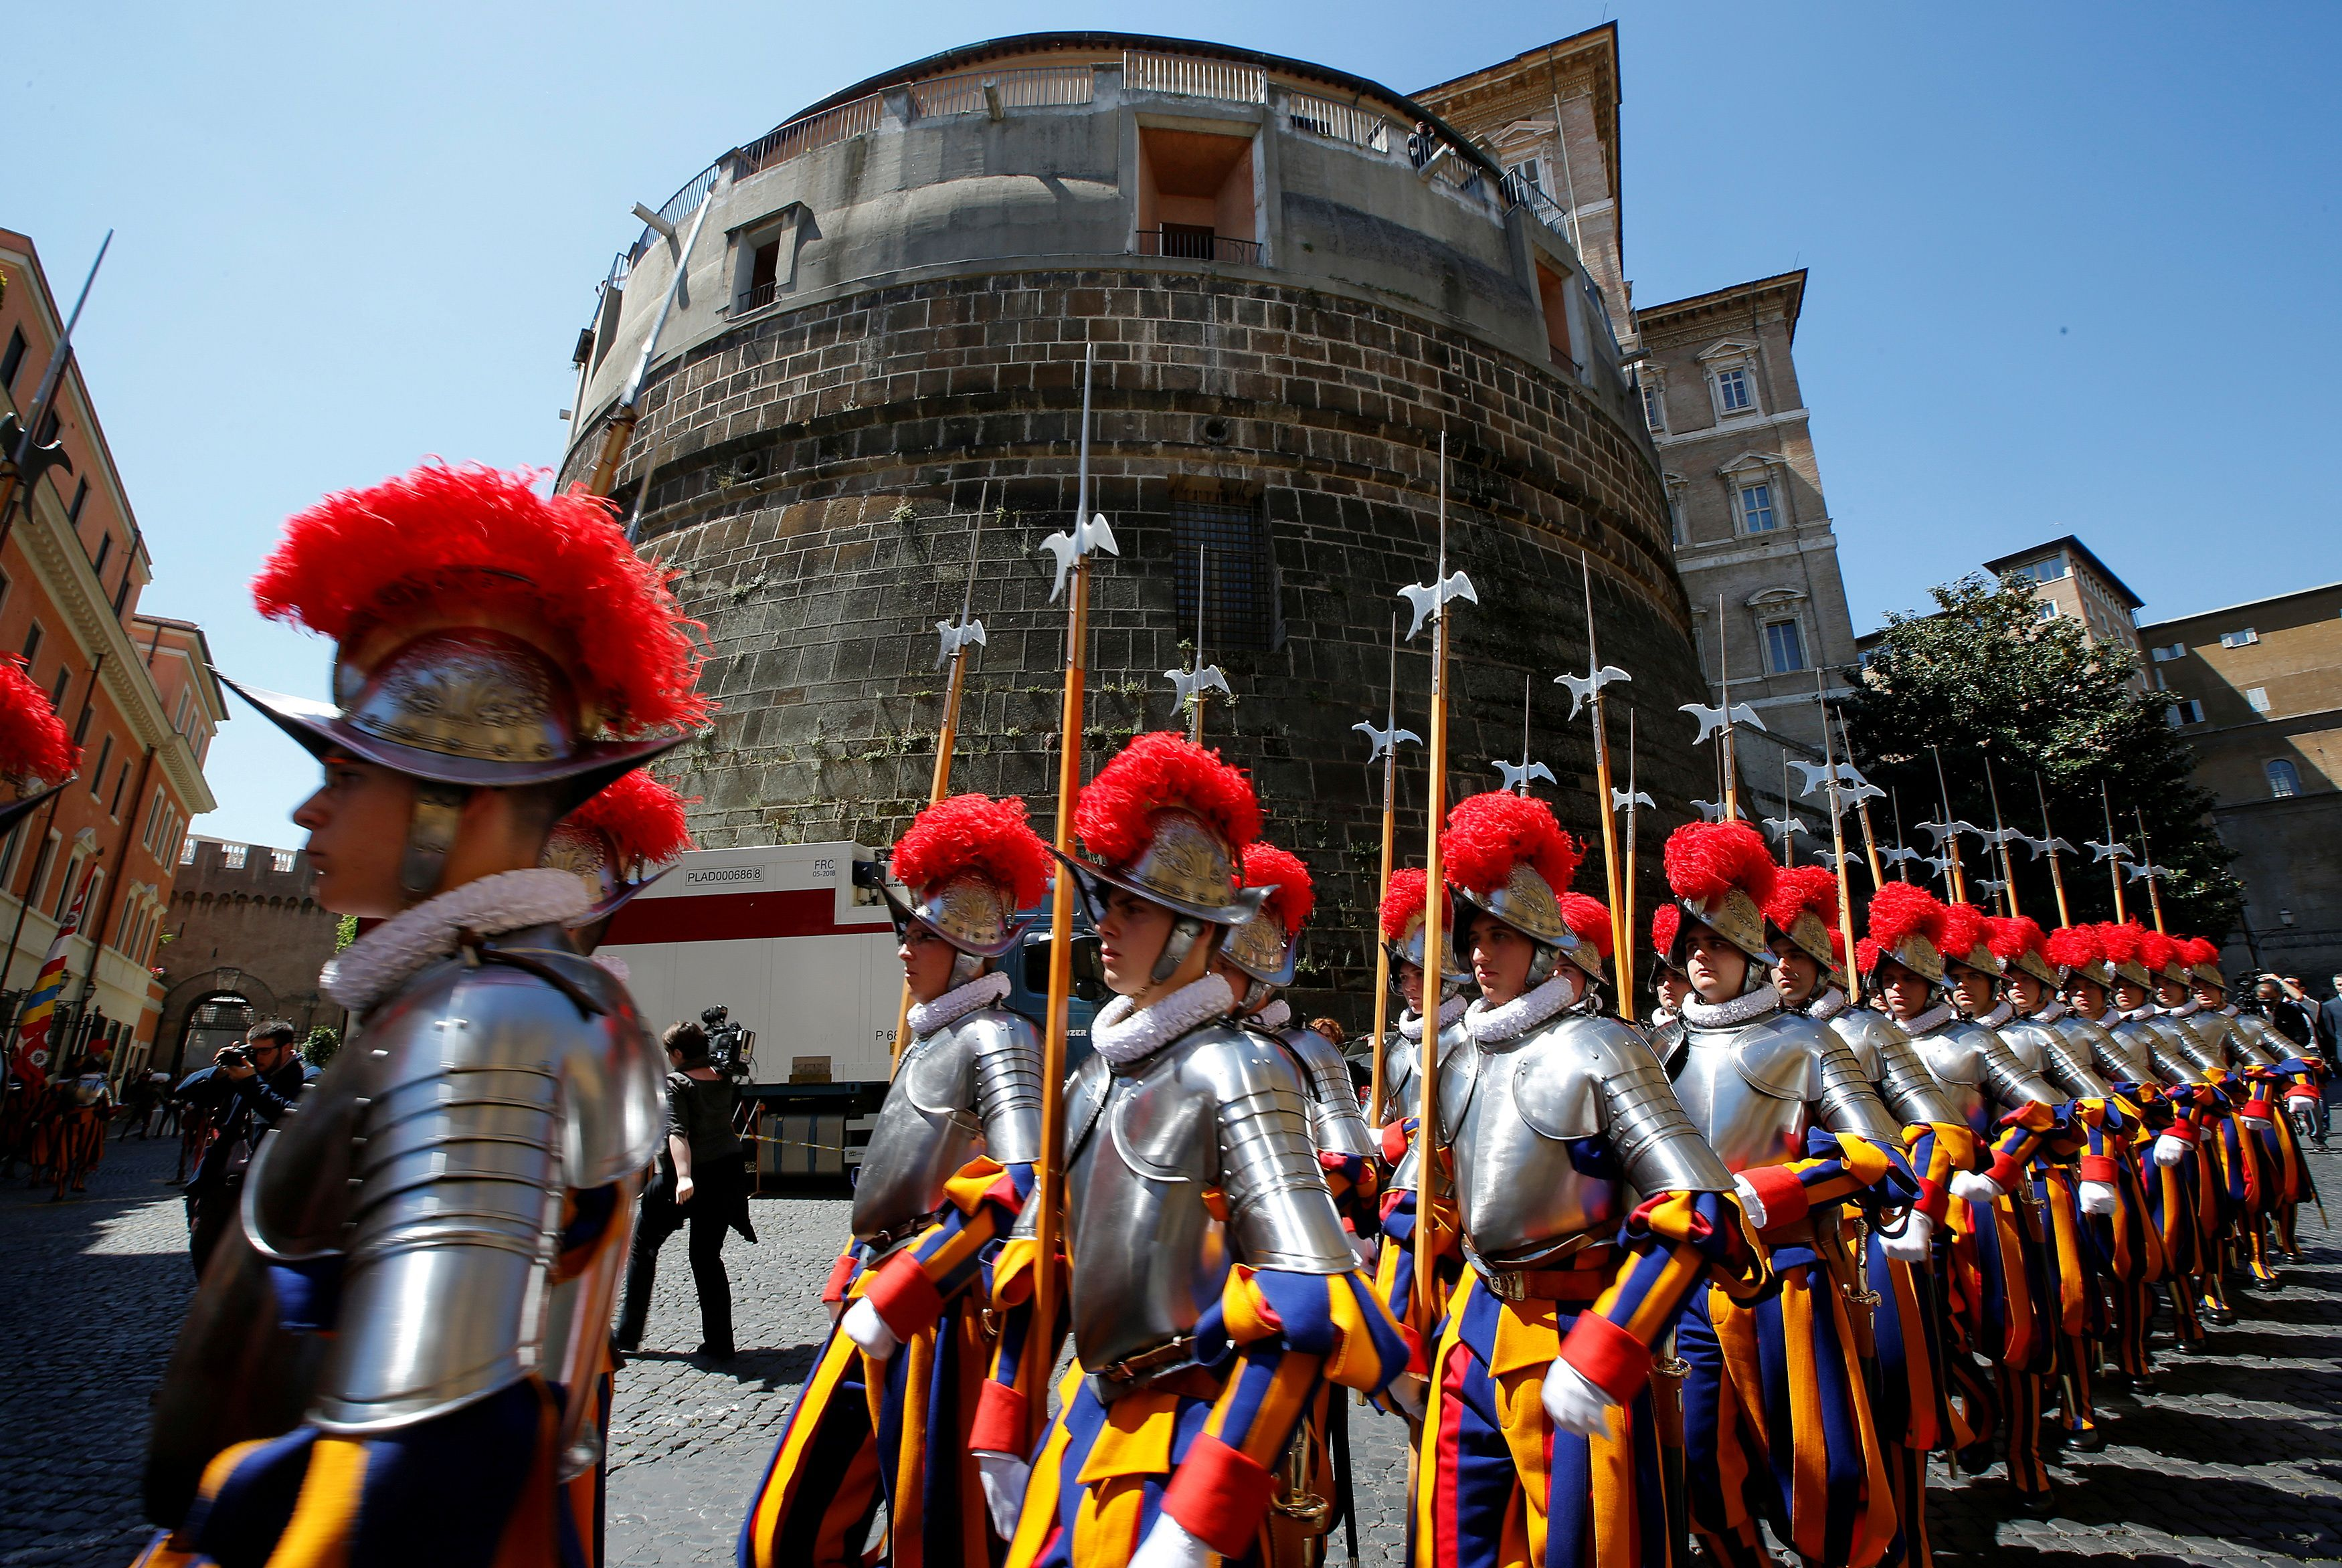 New recruits of the Vatican's elite Swiss Guard march in front of the tower of the Institute for Works of Religion (IOR) during the swearing-in ceremony at the Vatican May 6, 2014. REUTERS/Tony Gentile